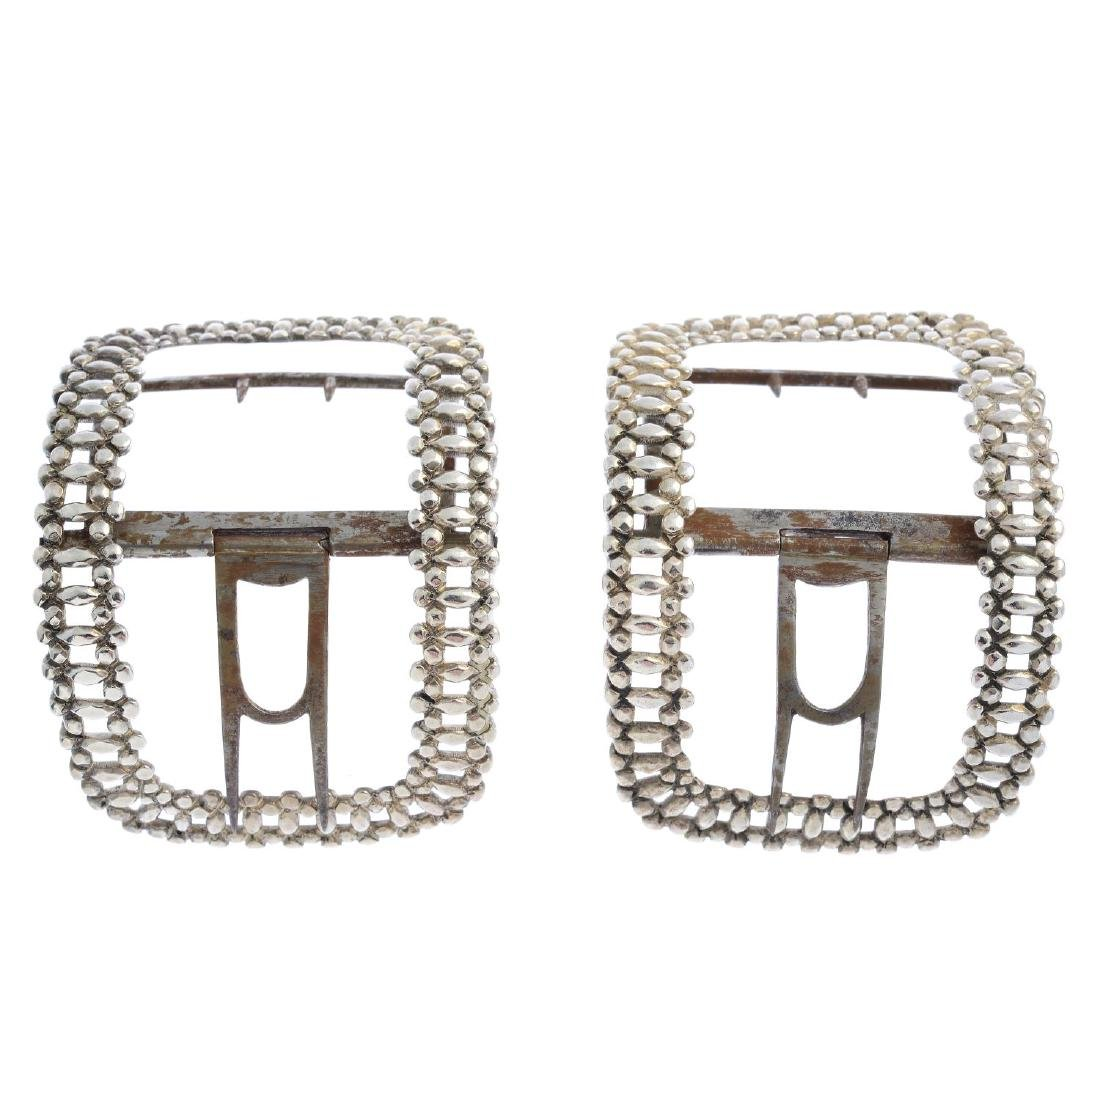 A pair of George III silver buckles. Each of curved